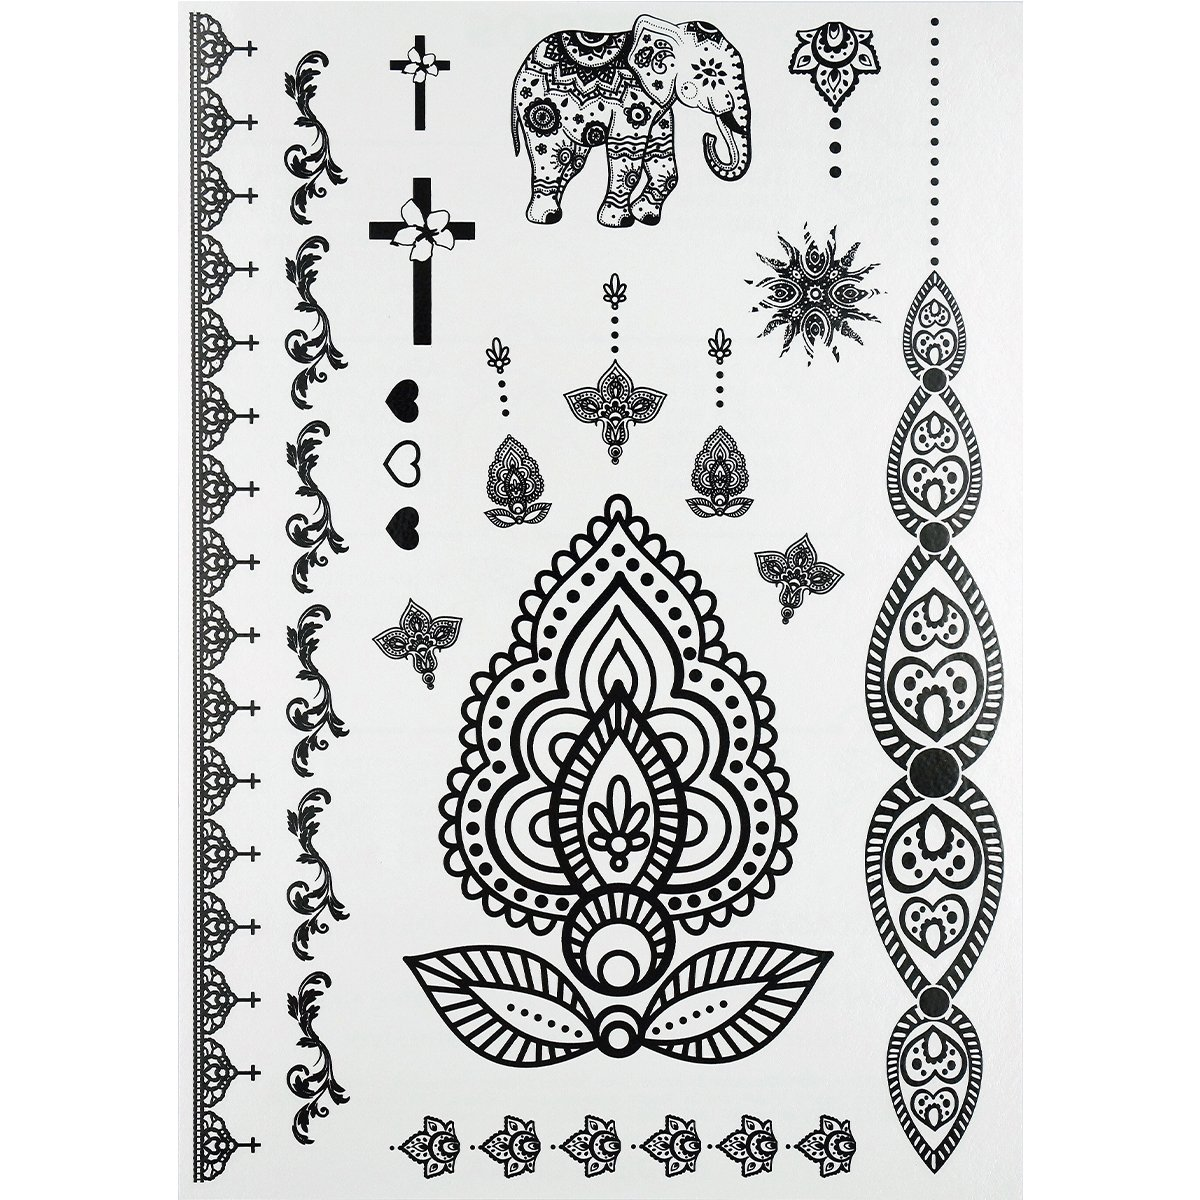 GIFT!!Tastto 6 Sheets Henna Body Paints Temporary Tattoos Black Lace Stickers for Girls and Women with GIFT by Tastto (Image #6)